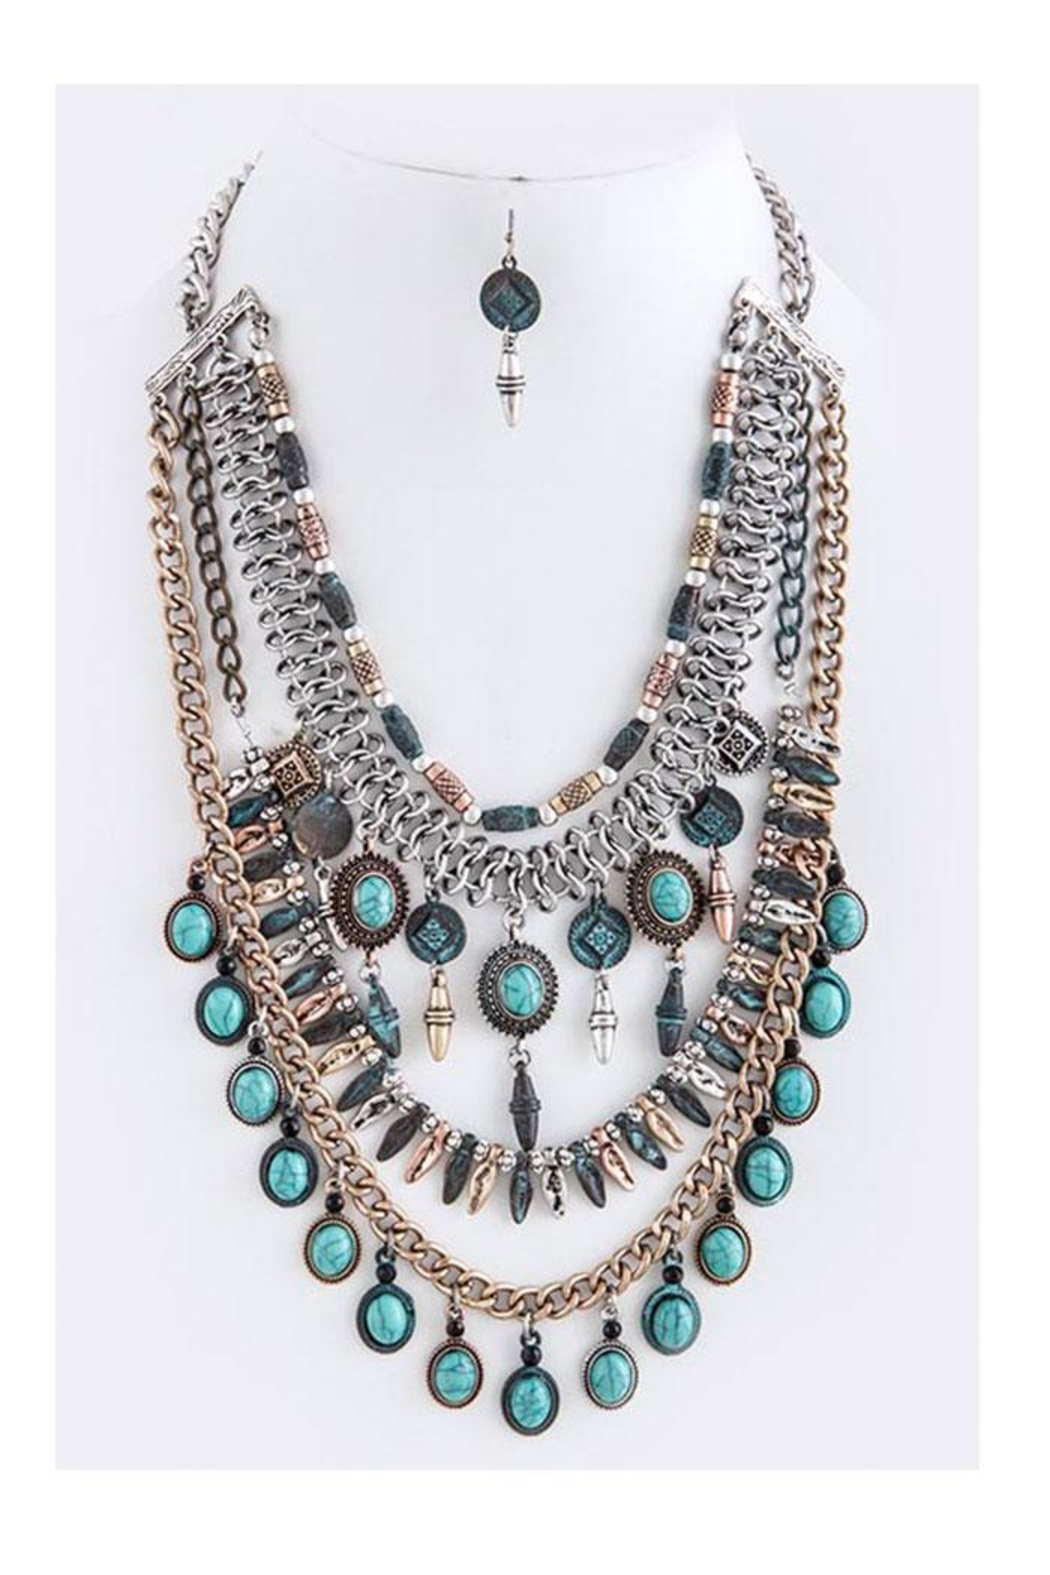 qlt hei redesign d zoom tiered necklace constrain shop view fit people slide free minka